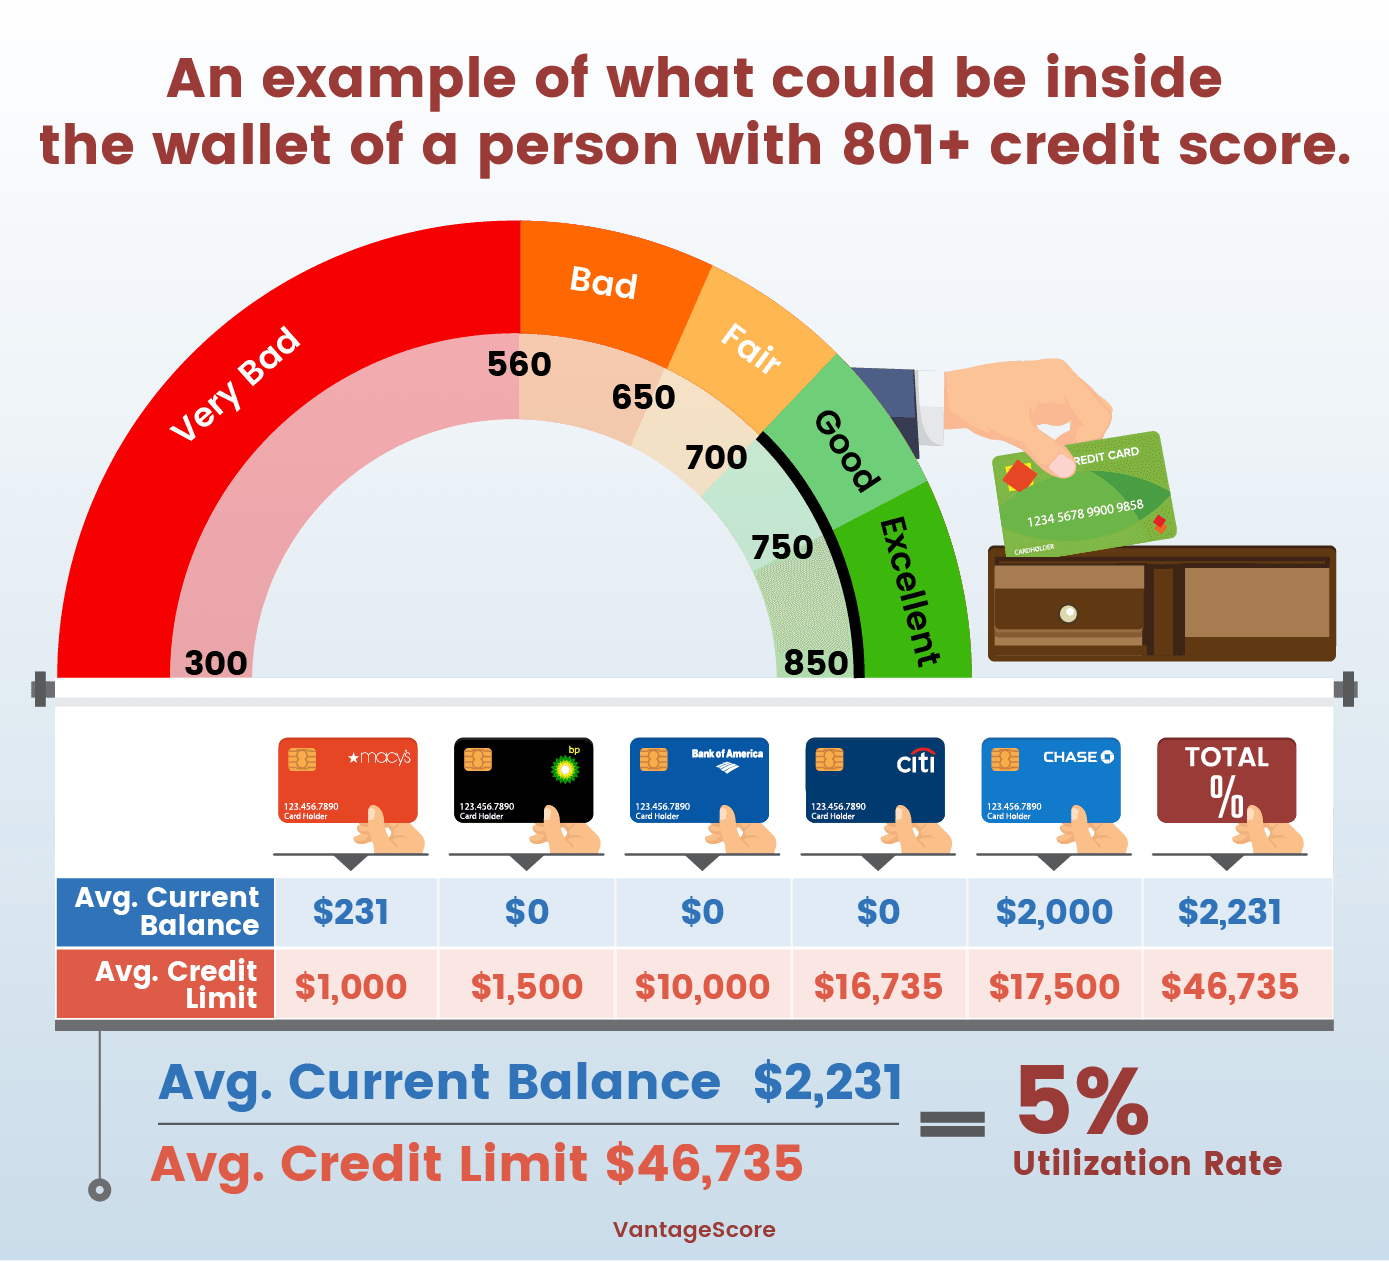 What could be inside a wallet of a person with 801+ credit score